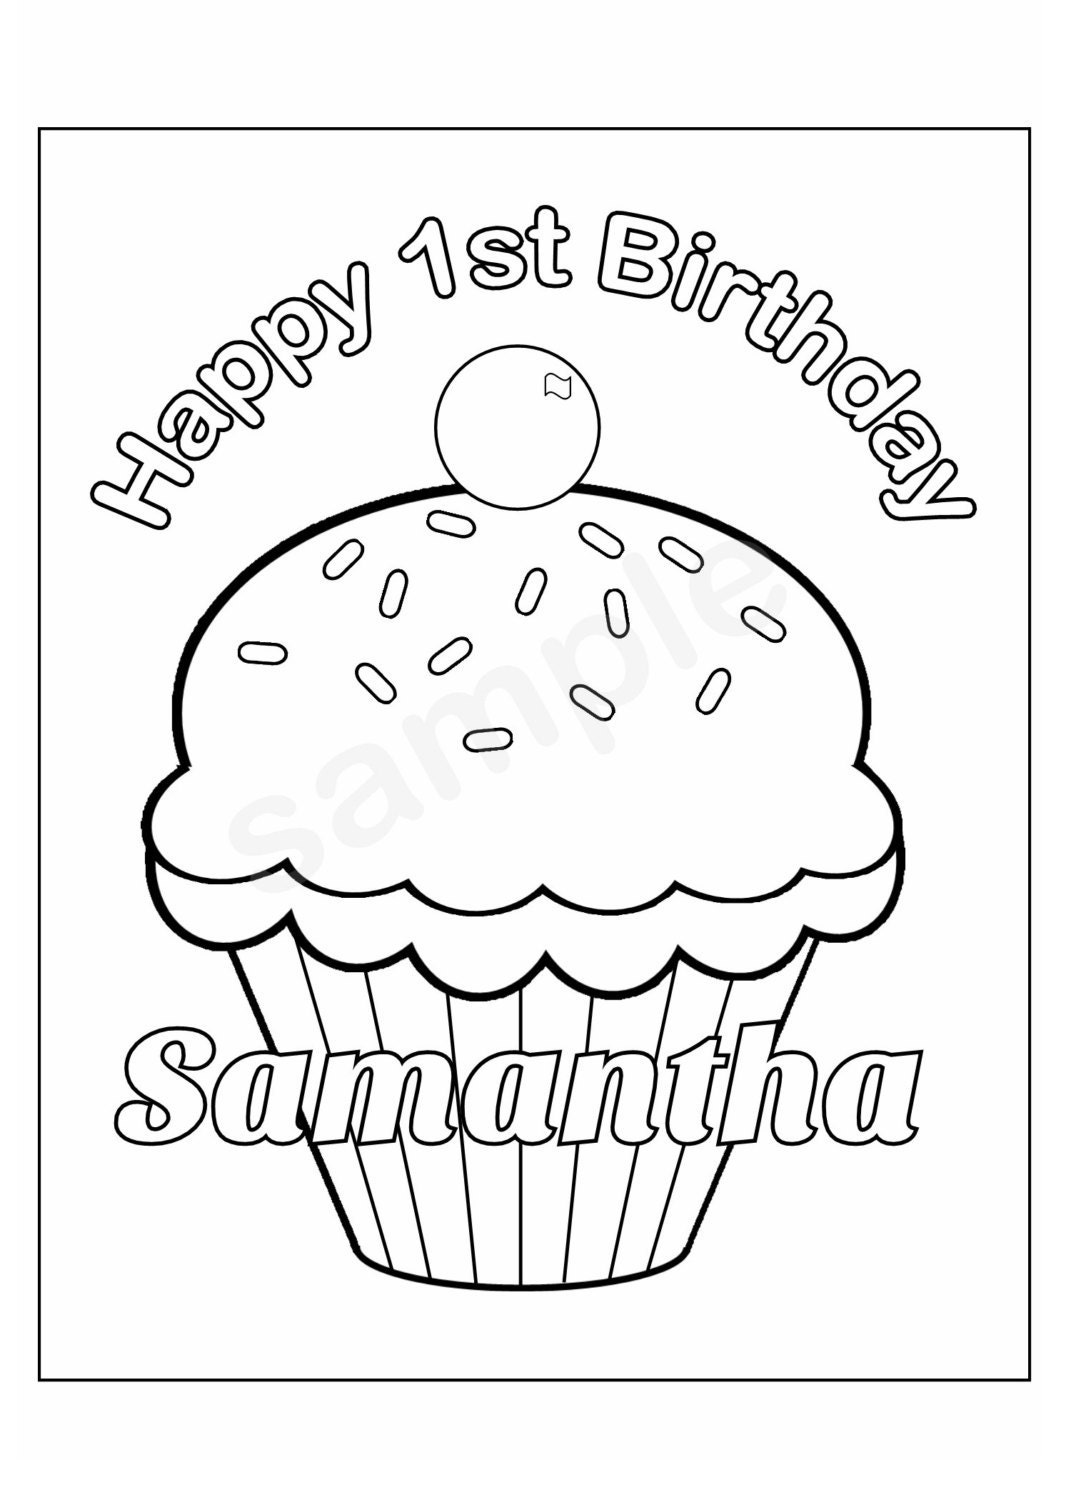 personalized birthday coloring pages | Personalized Printable Birthday Cupcake cup cake by ...